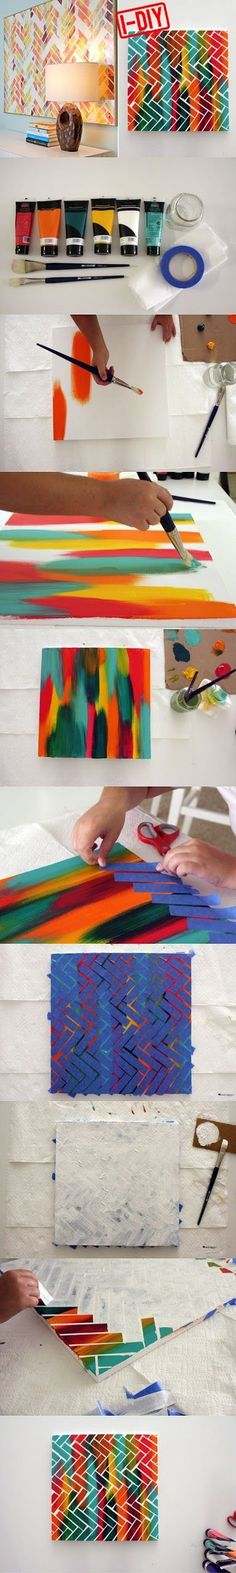 Easy ARTWORK PROJECT #DIY #College #Dorm #Apartment